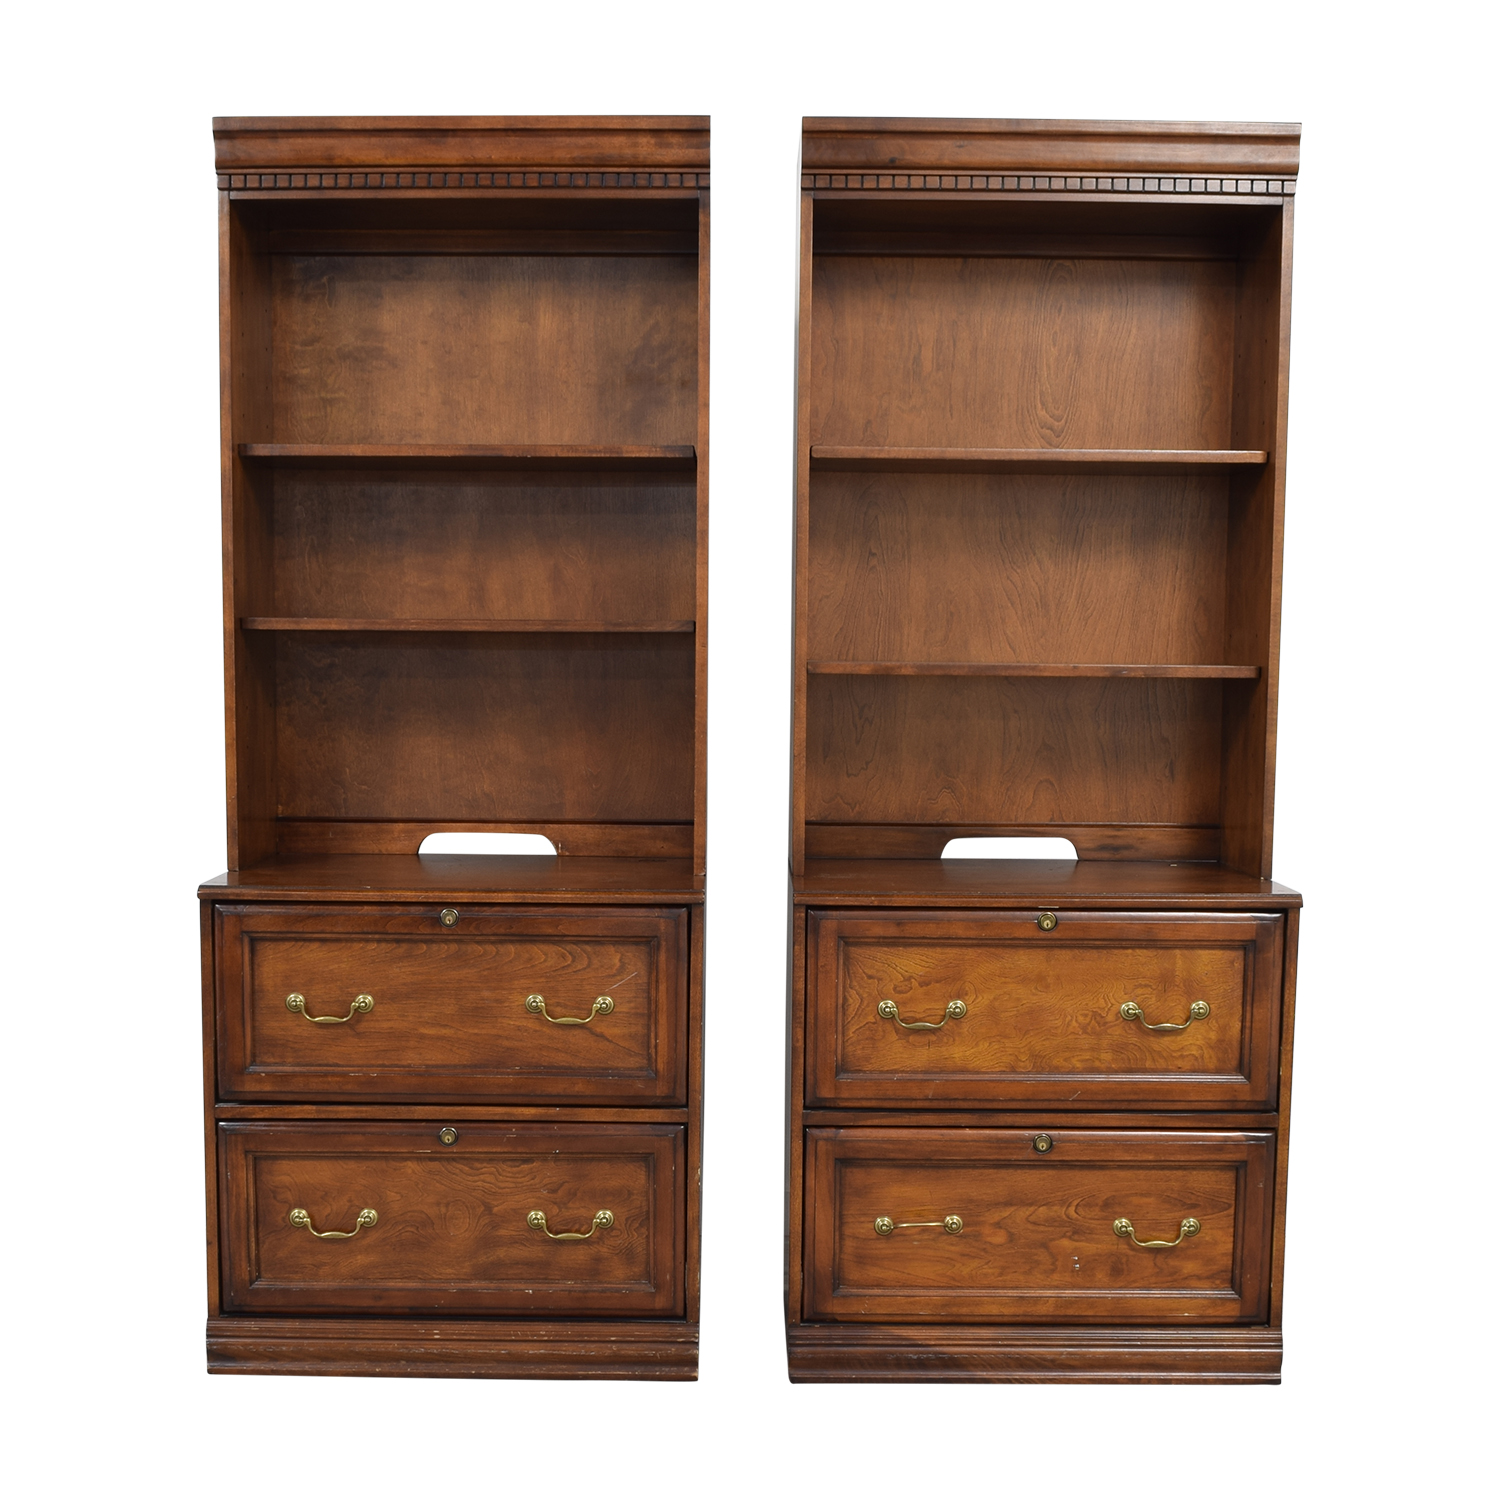 buy Hooker Wood Two-Drawer File Cabinets with Adjustable Shelving Hutches Hooker Storage